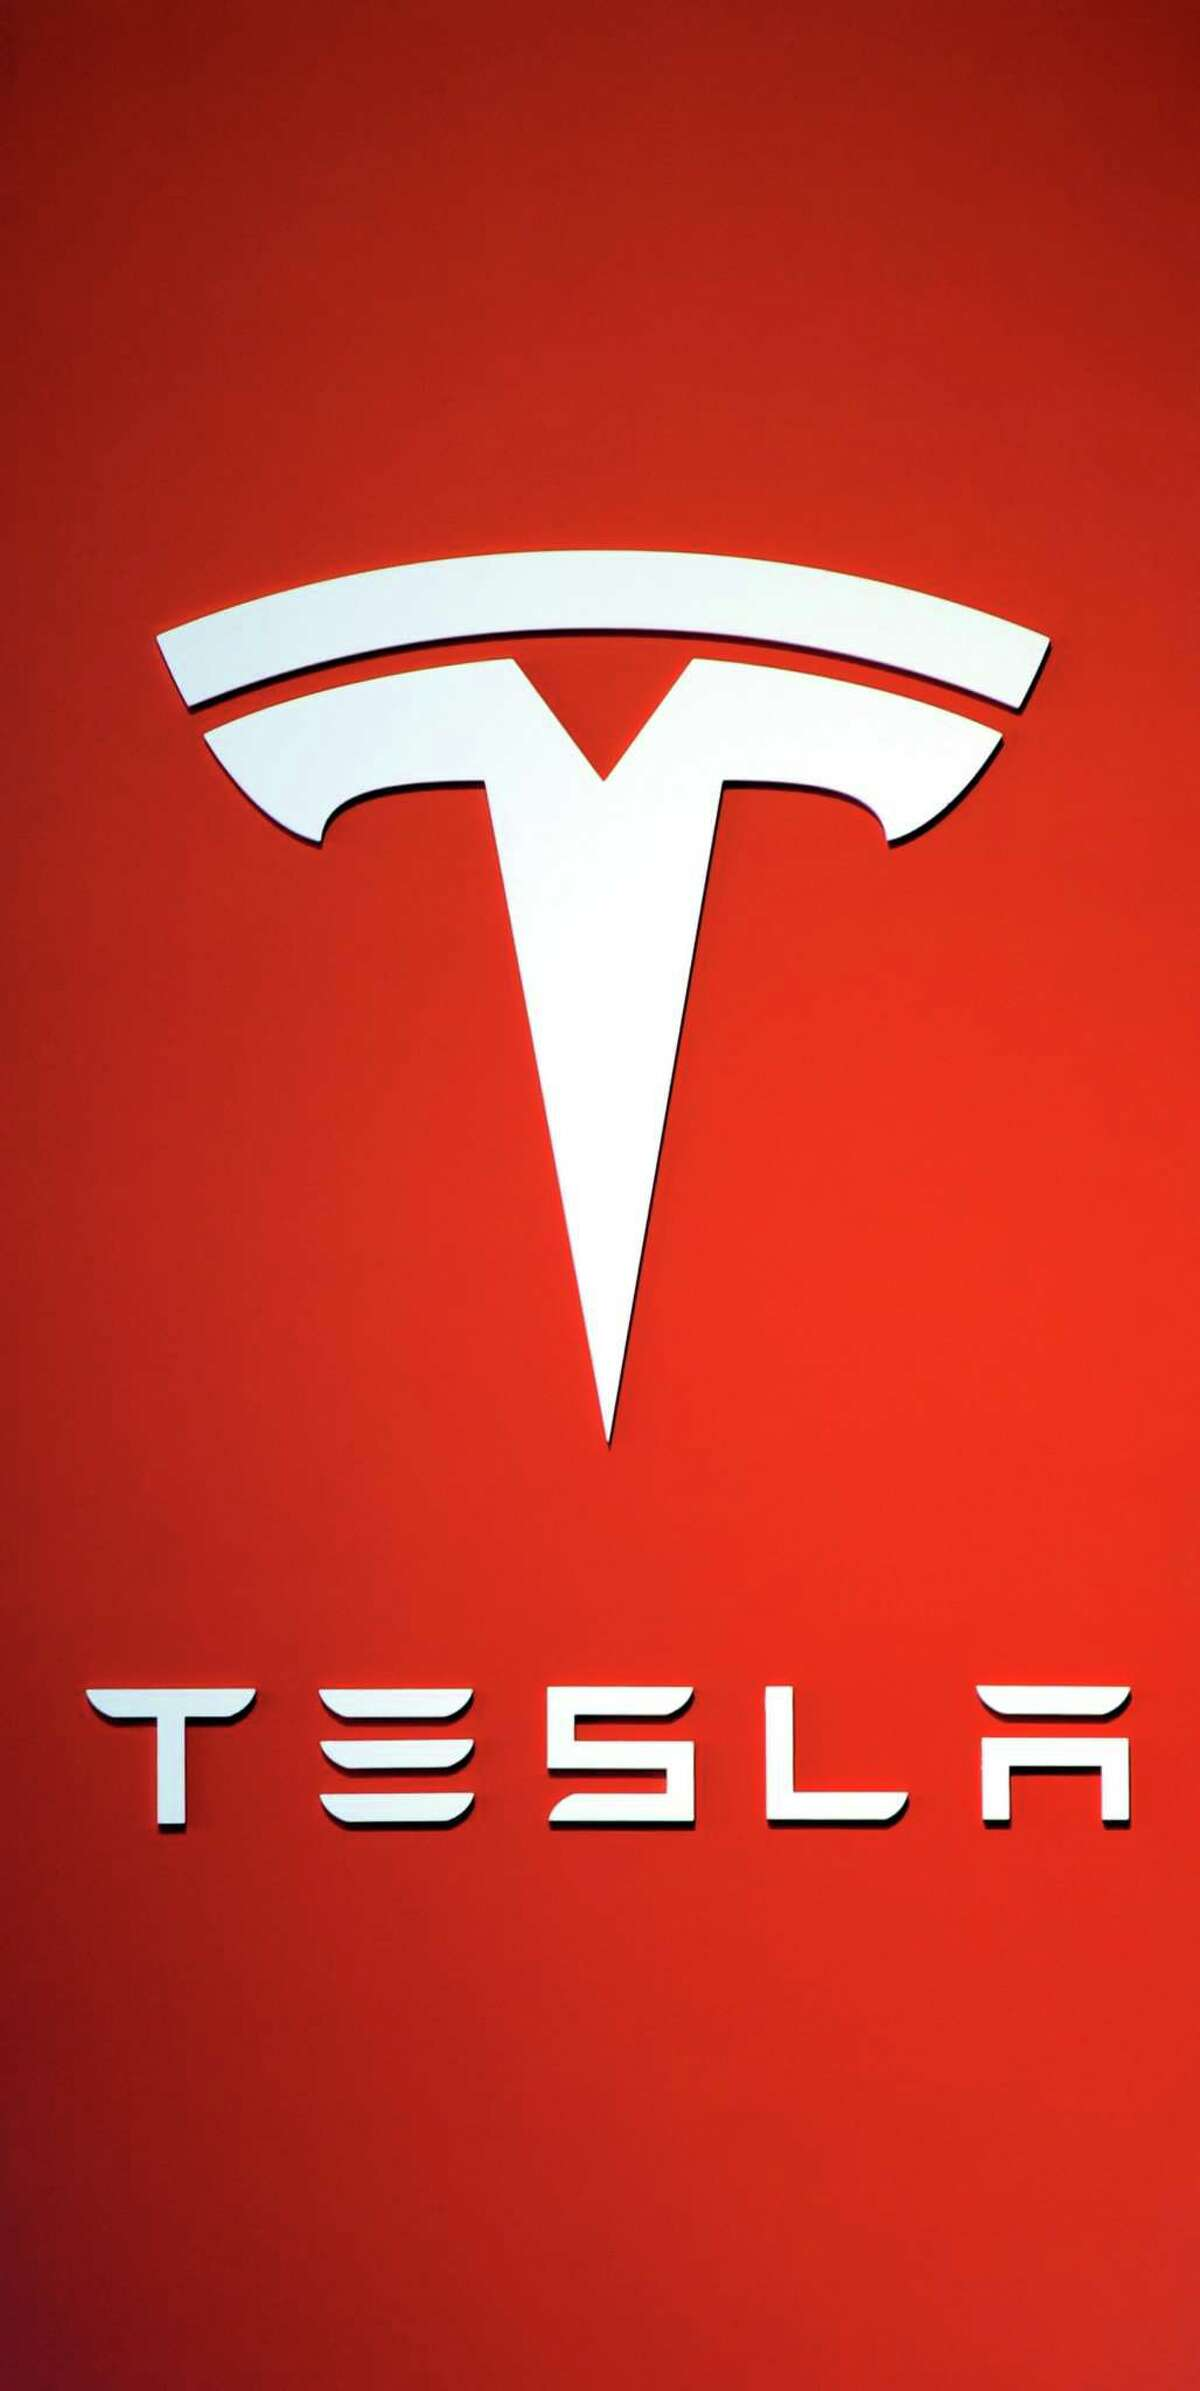 The logo for the Tesla Motors